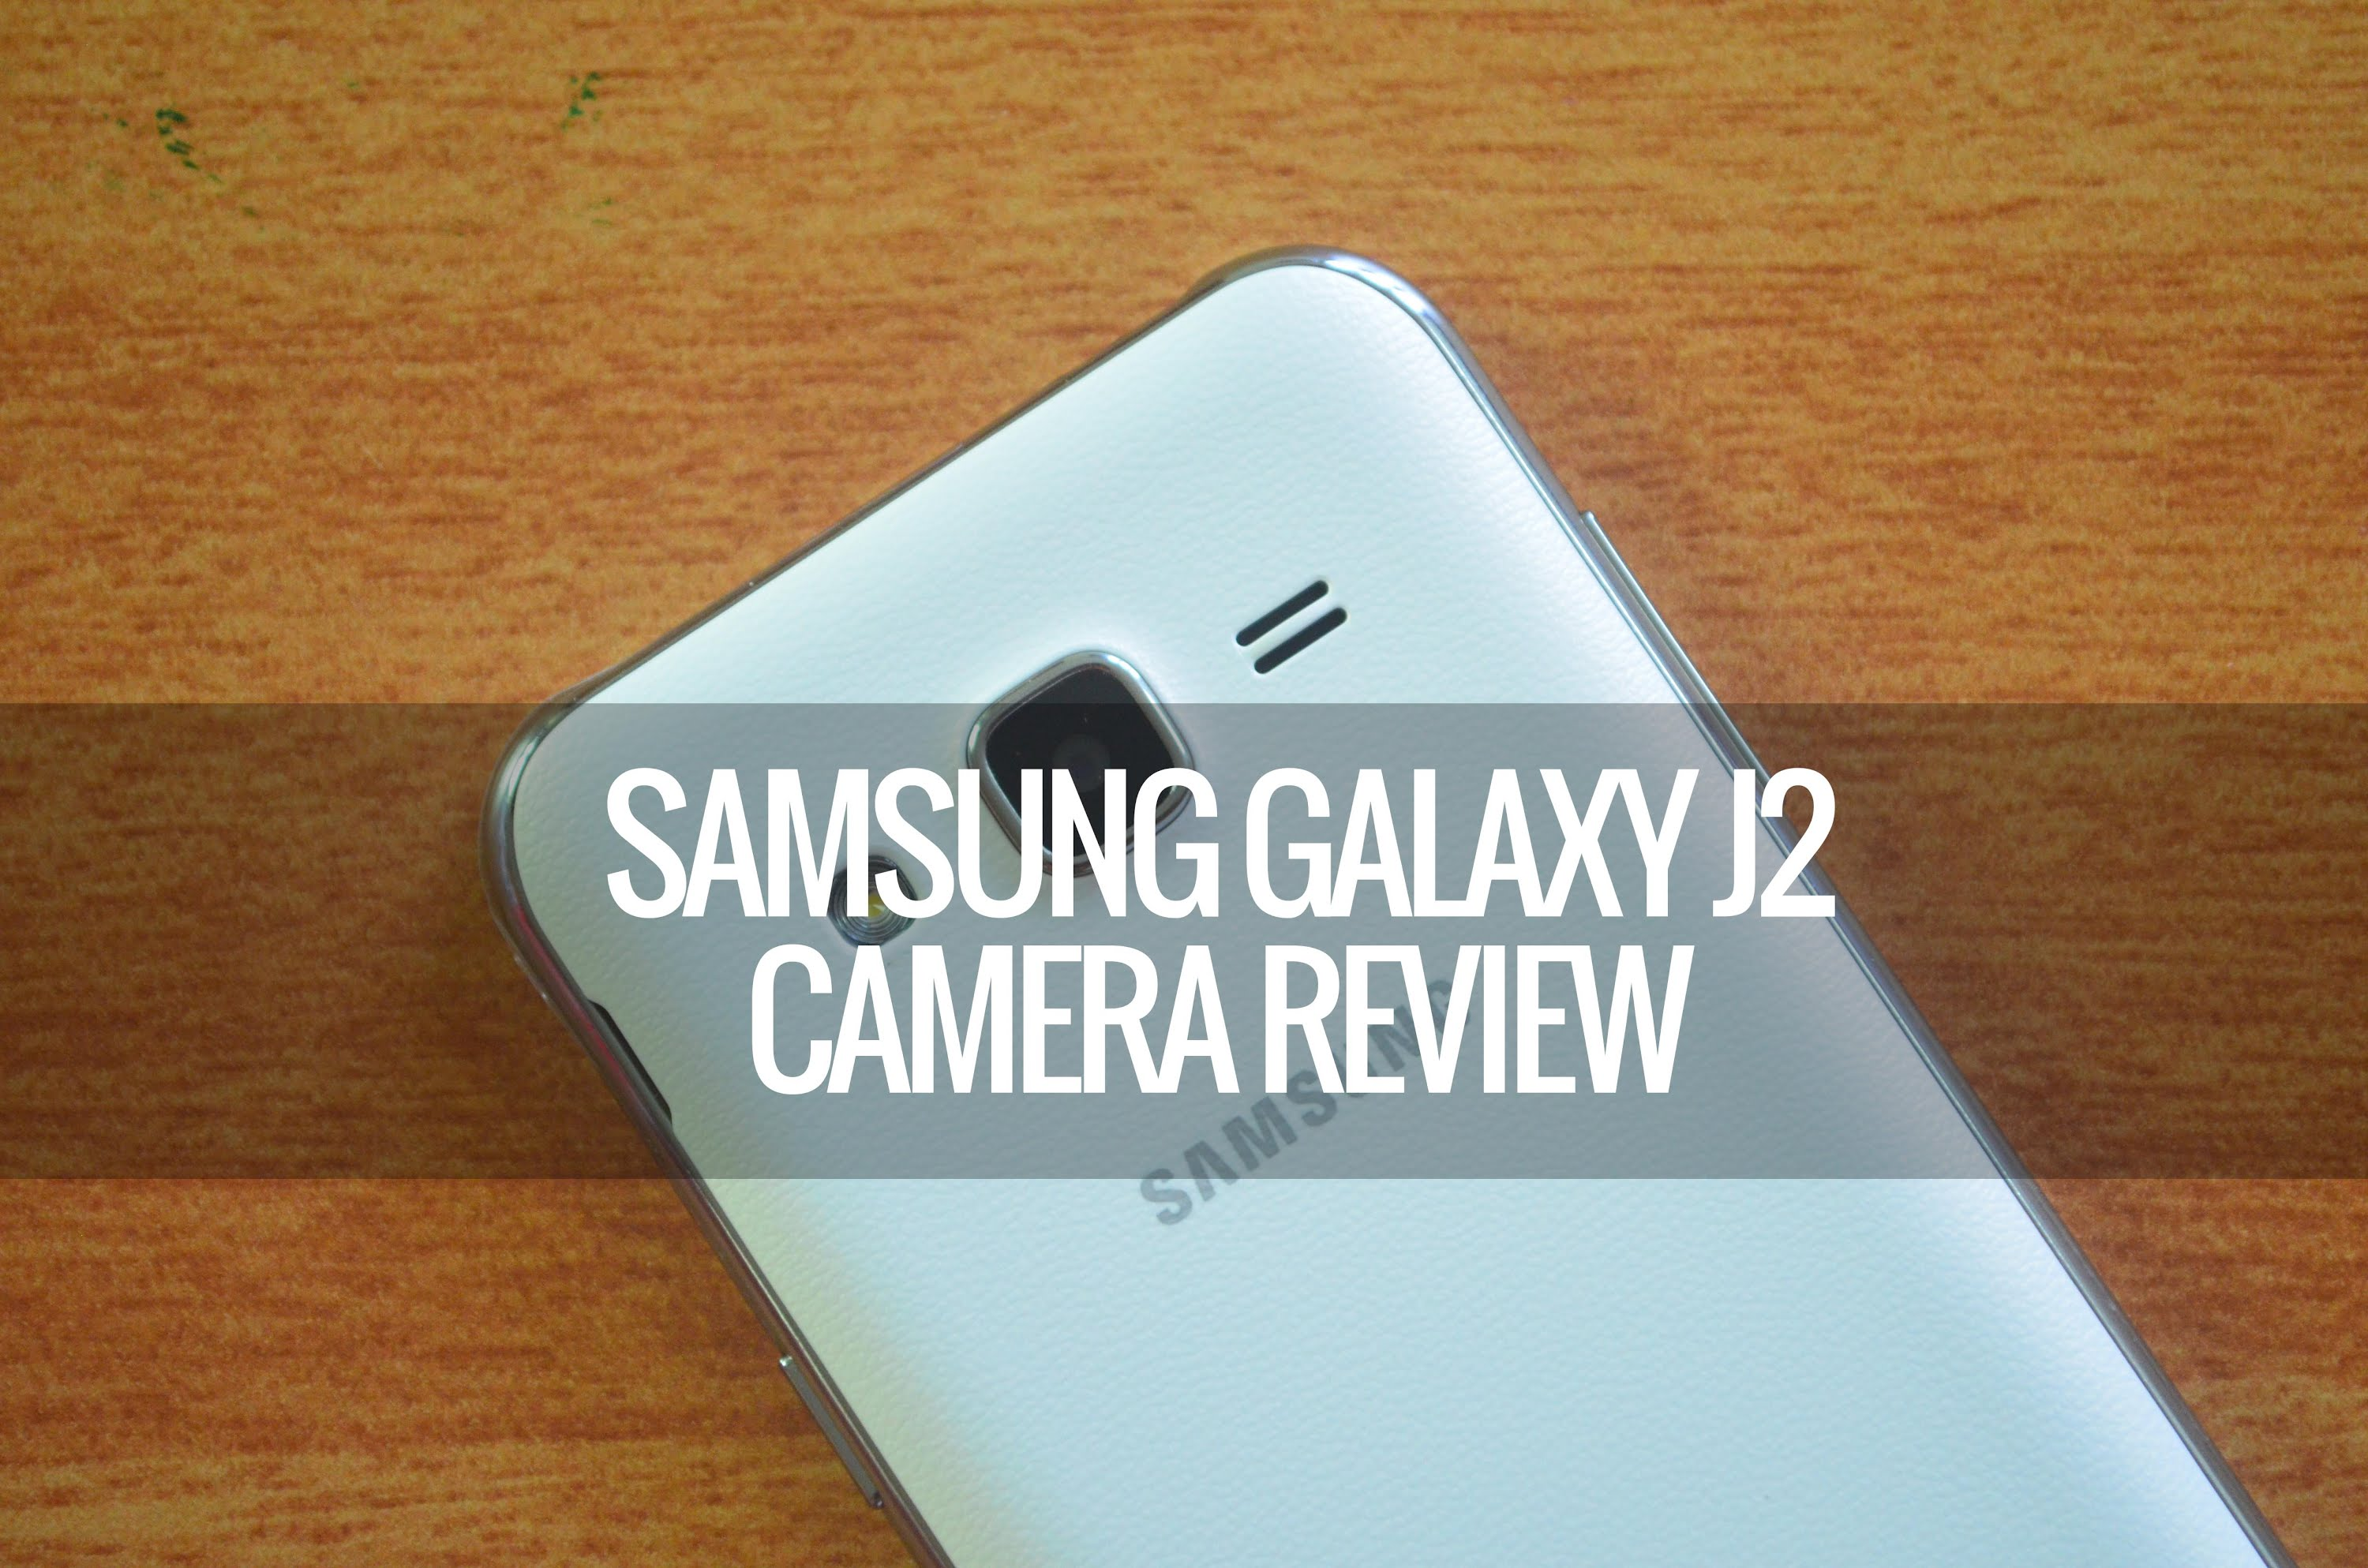 Samsung Galaxy J2 Camera Review | Techniqued – Digital